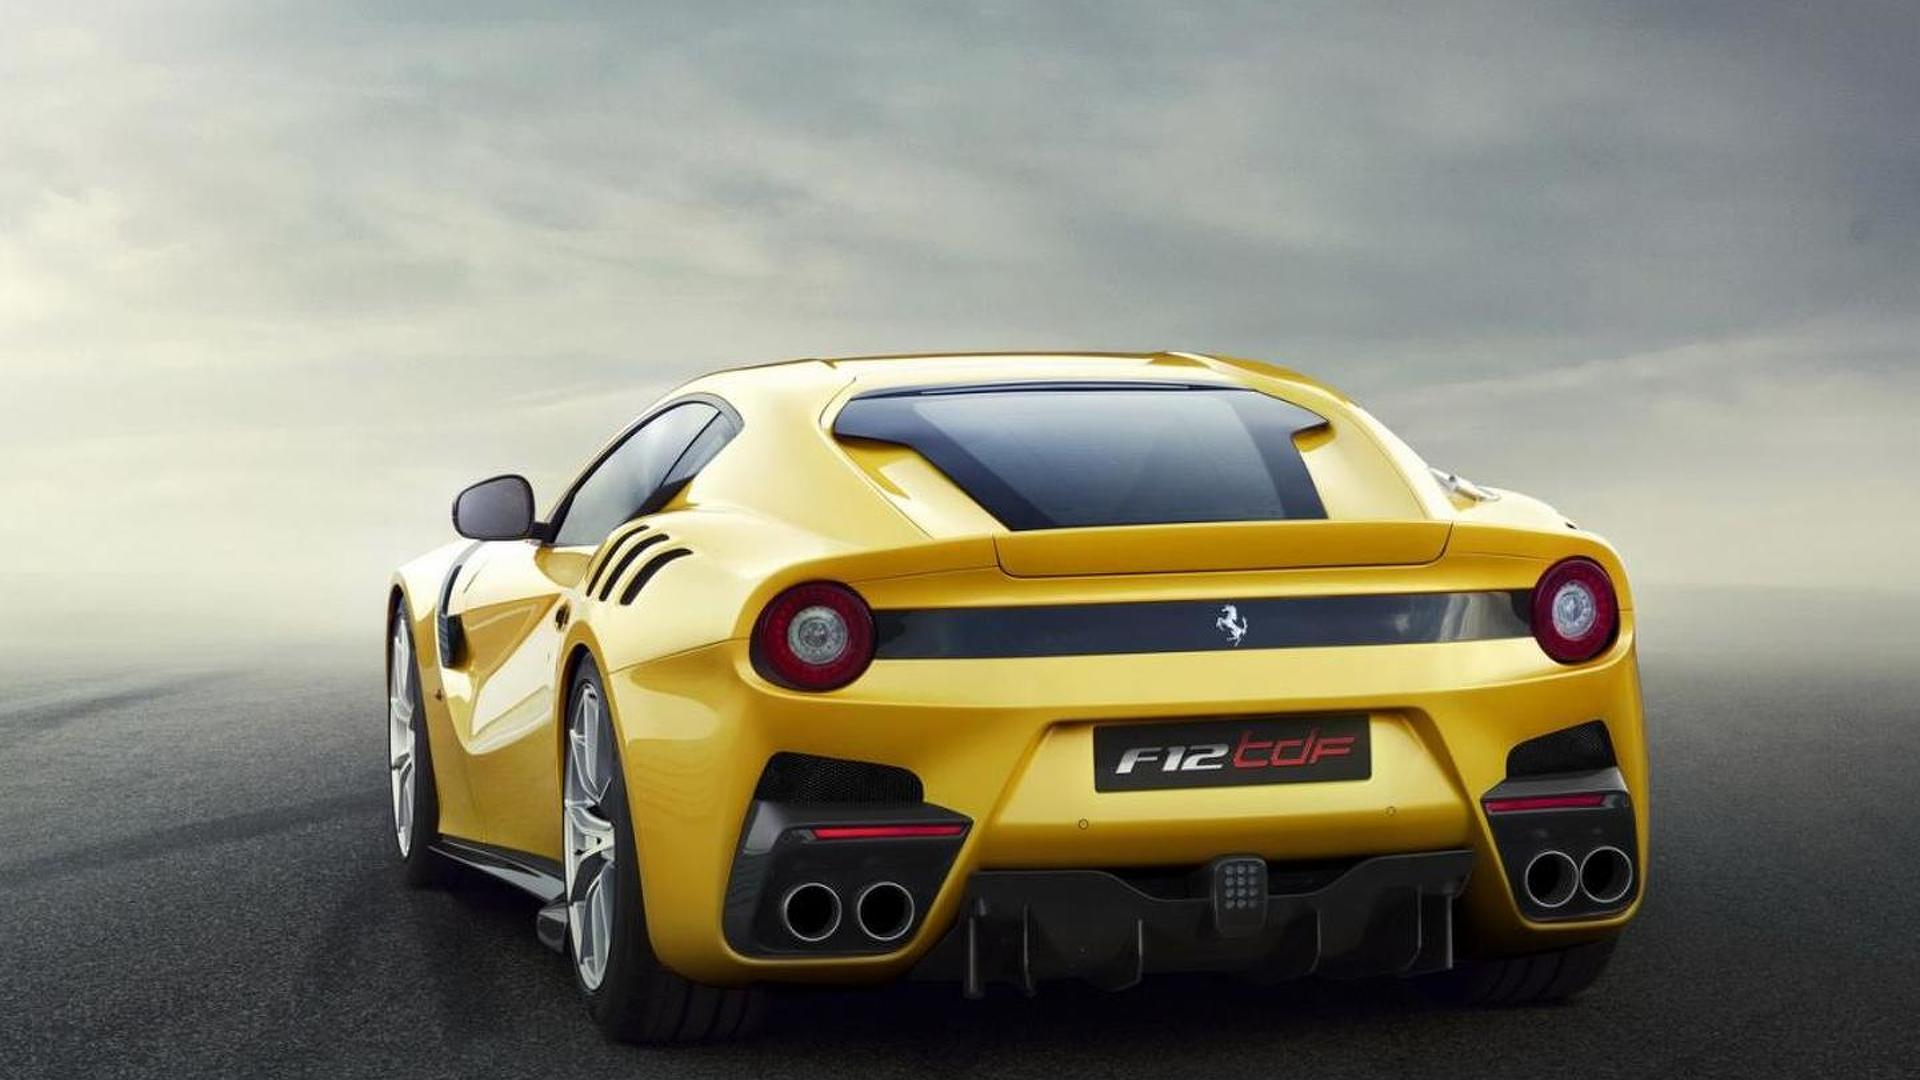 Ferrari to boost production by 30% to 9,000 cars by 2019